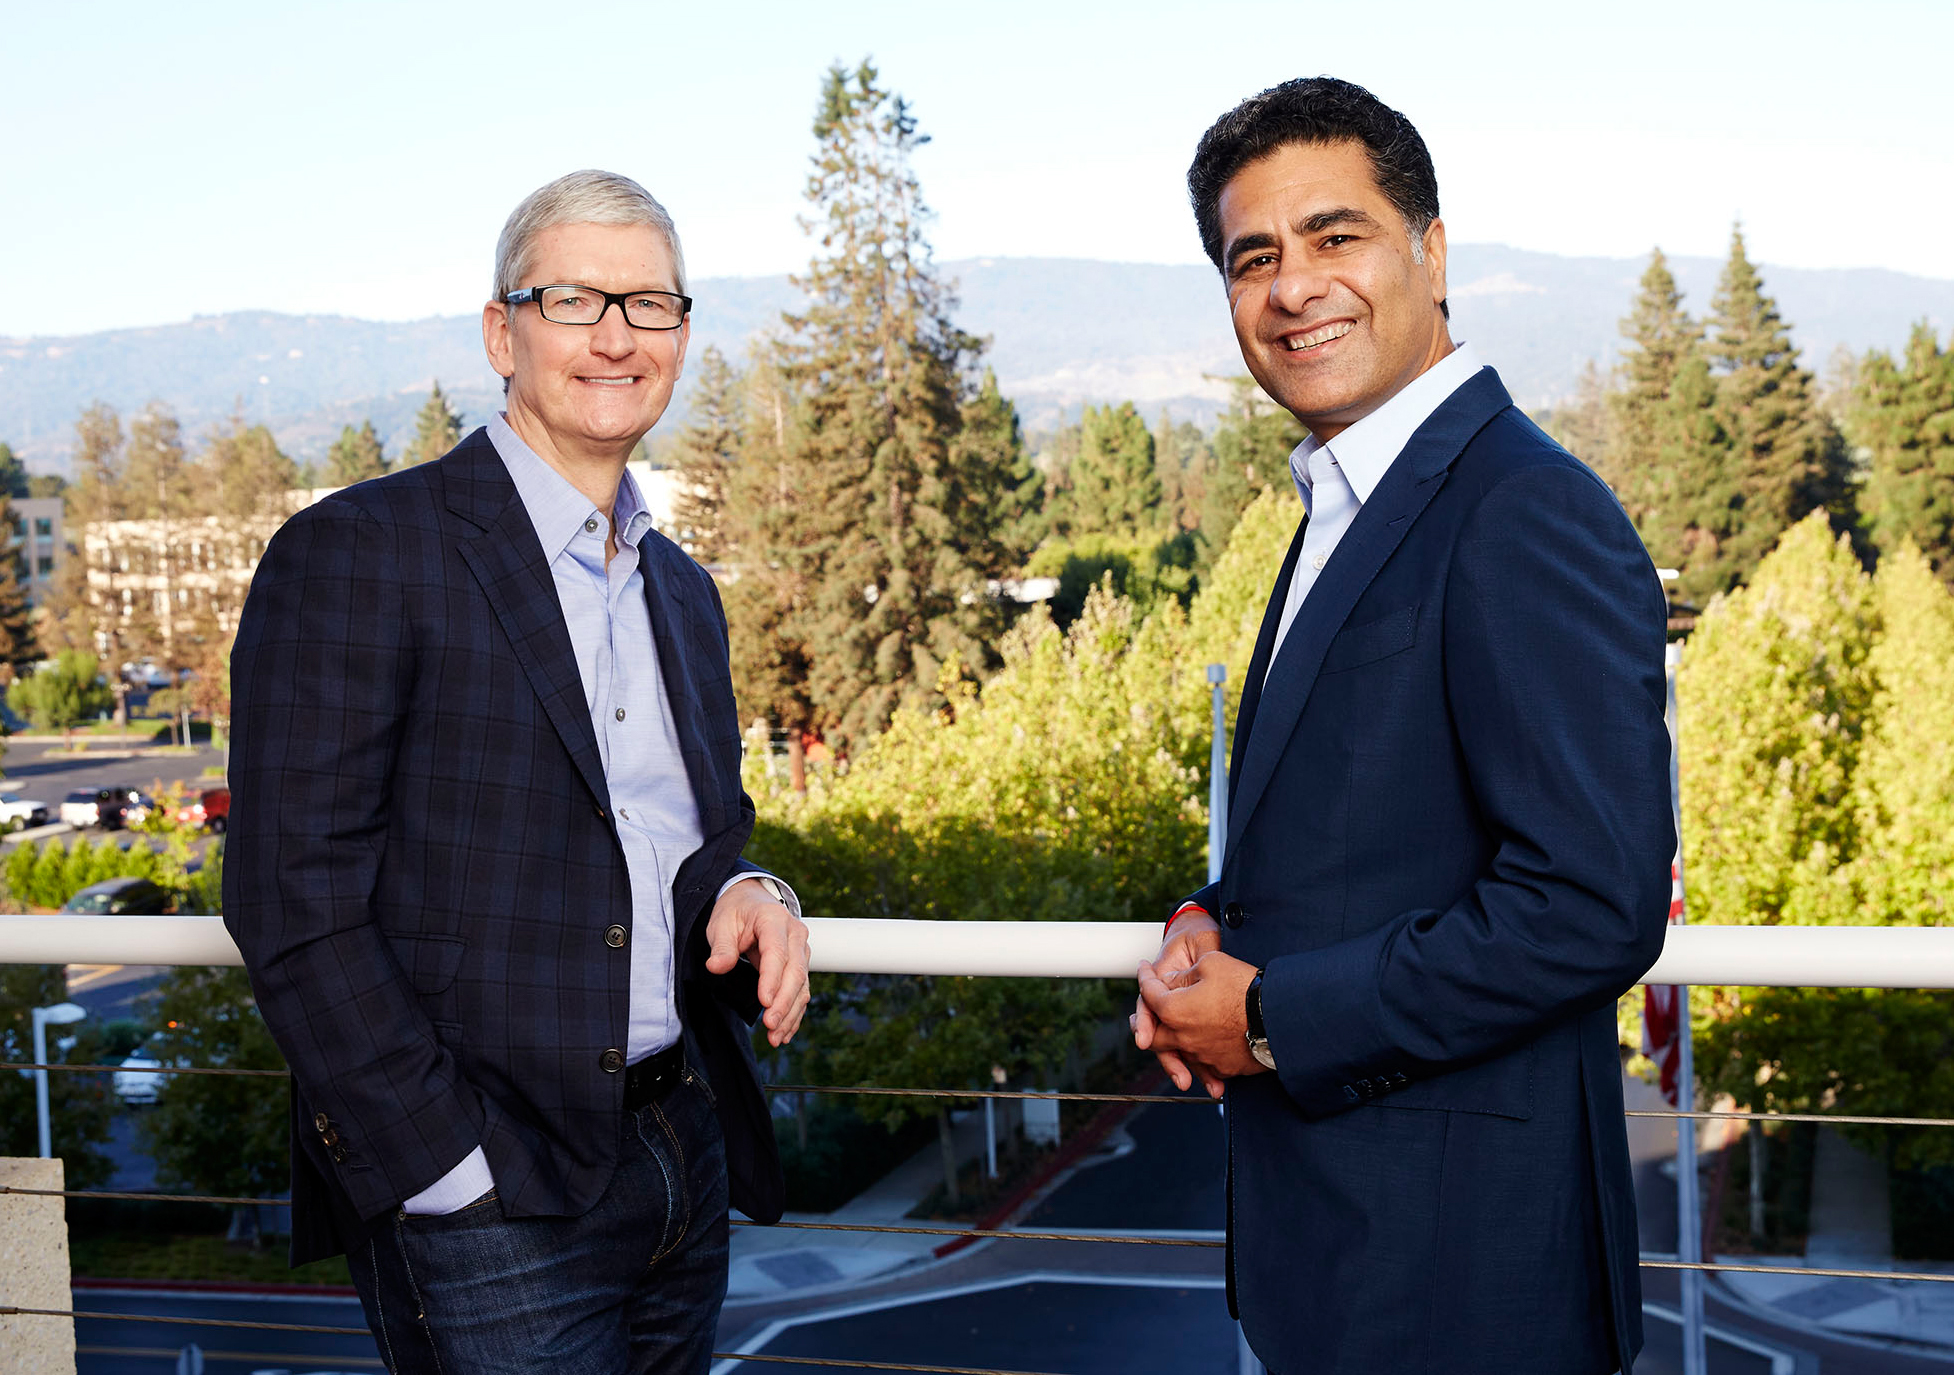 Apple's Latest Enterprise Partnership is With Professional Services Firm Deloitte